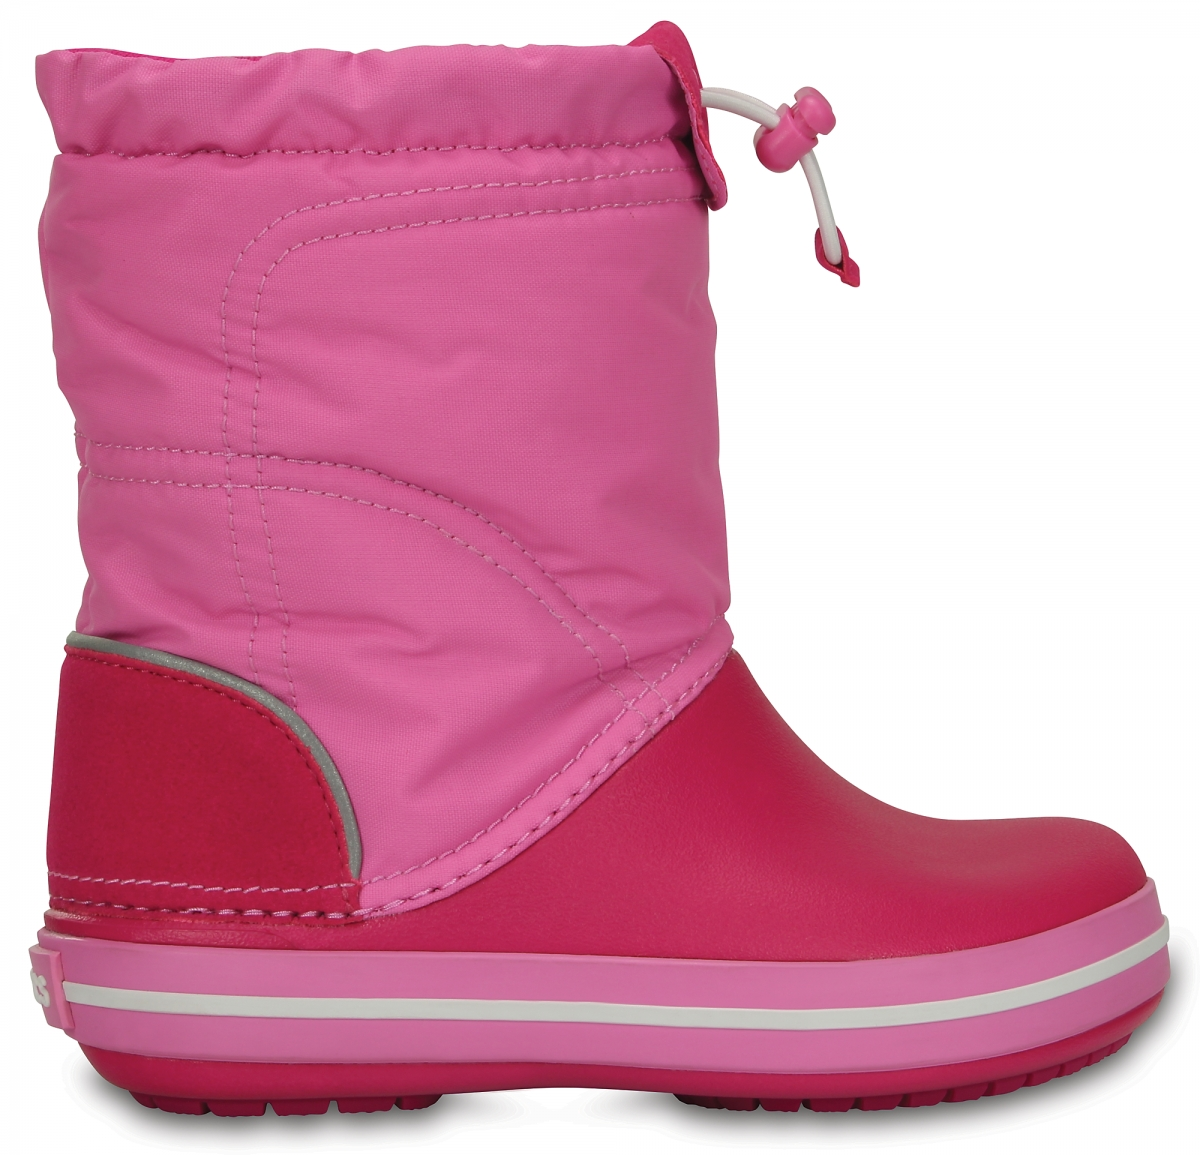 Crocs Crocband LodgePoint Boot Kids Candy Pink/Party Pink, C13 (30-31)